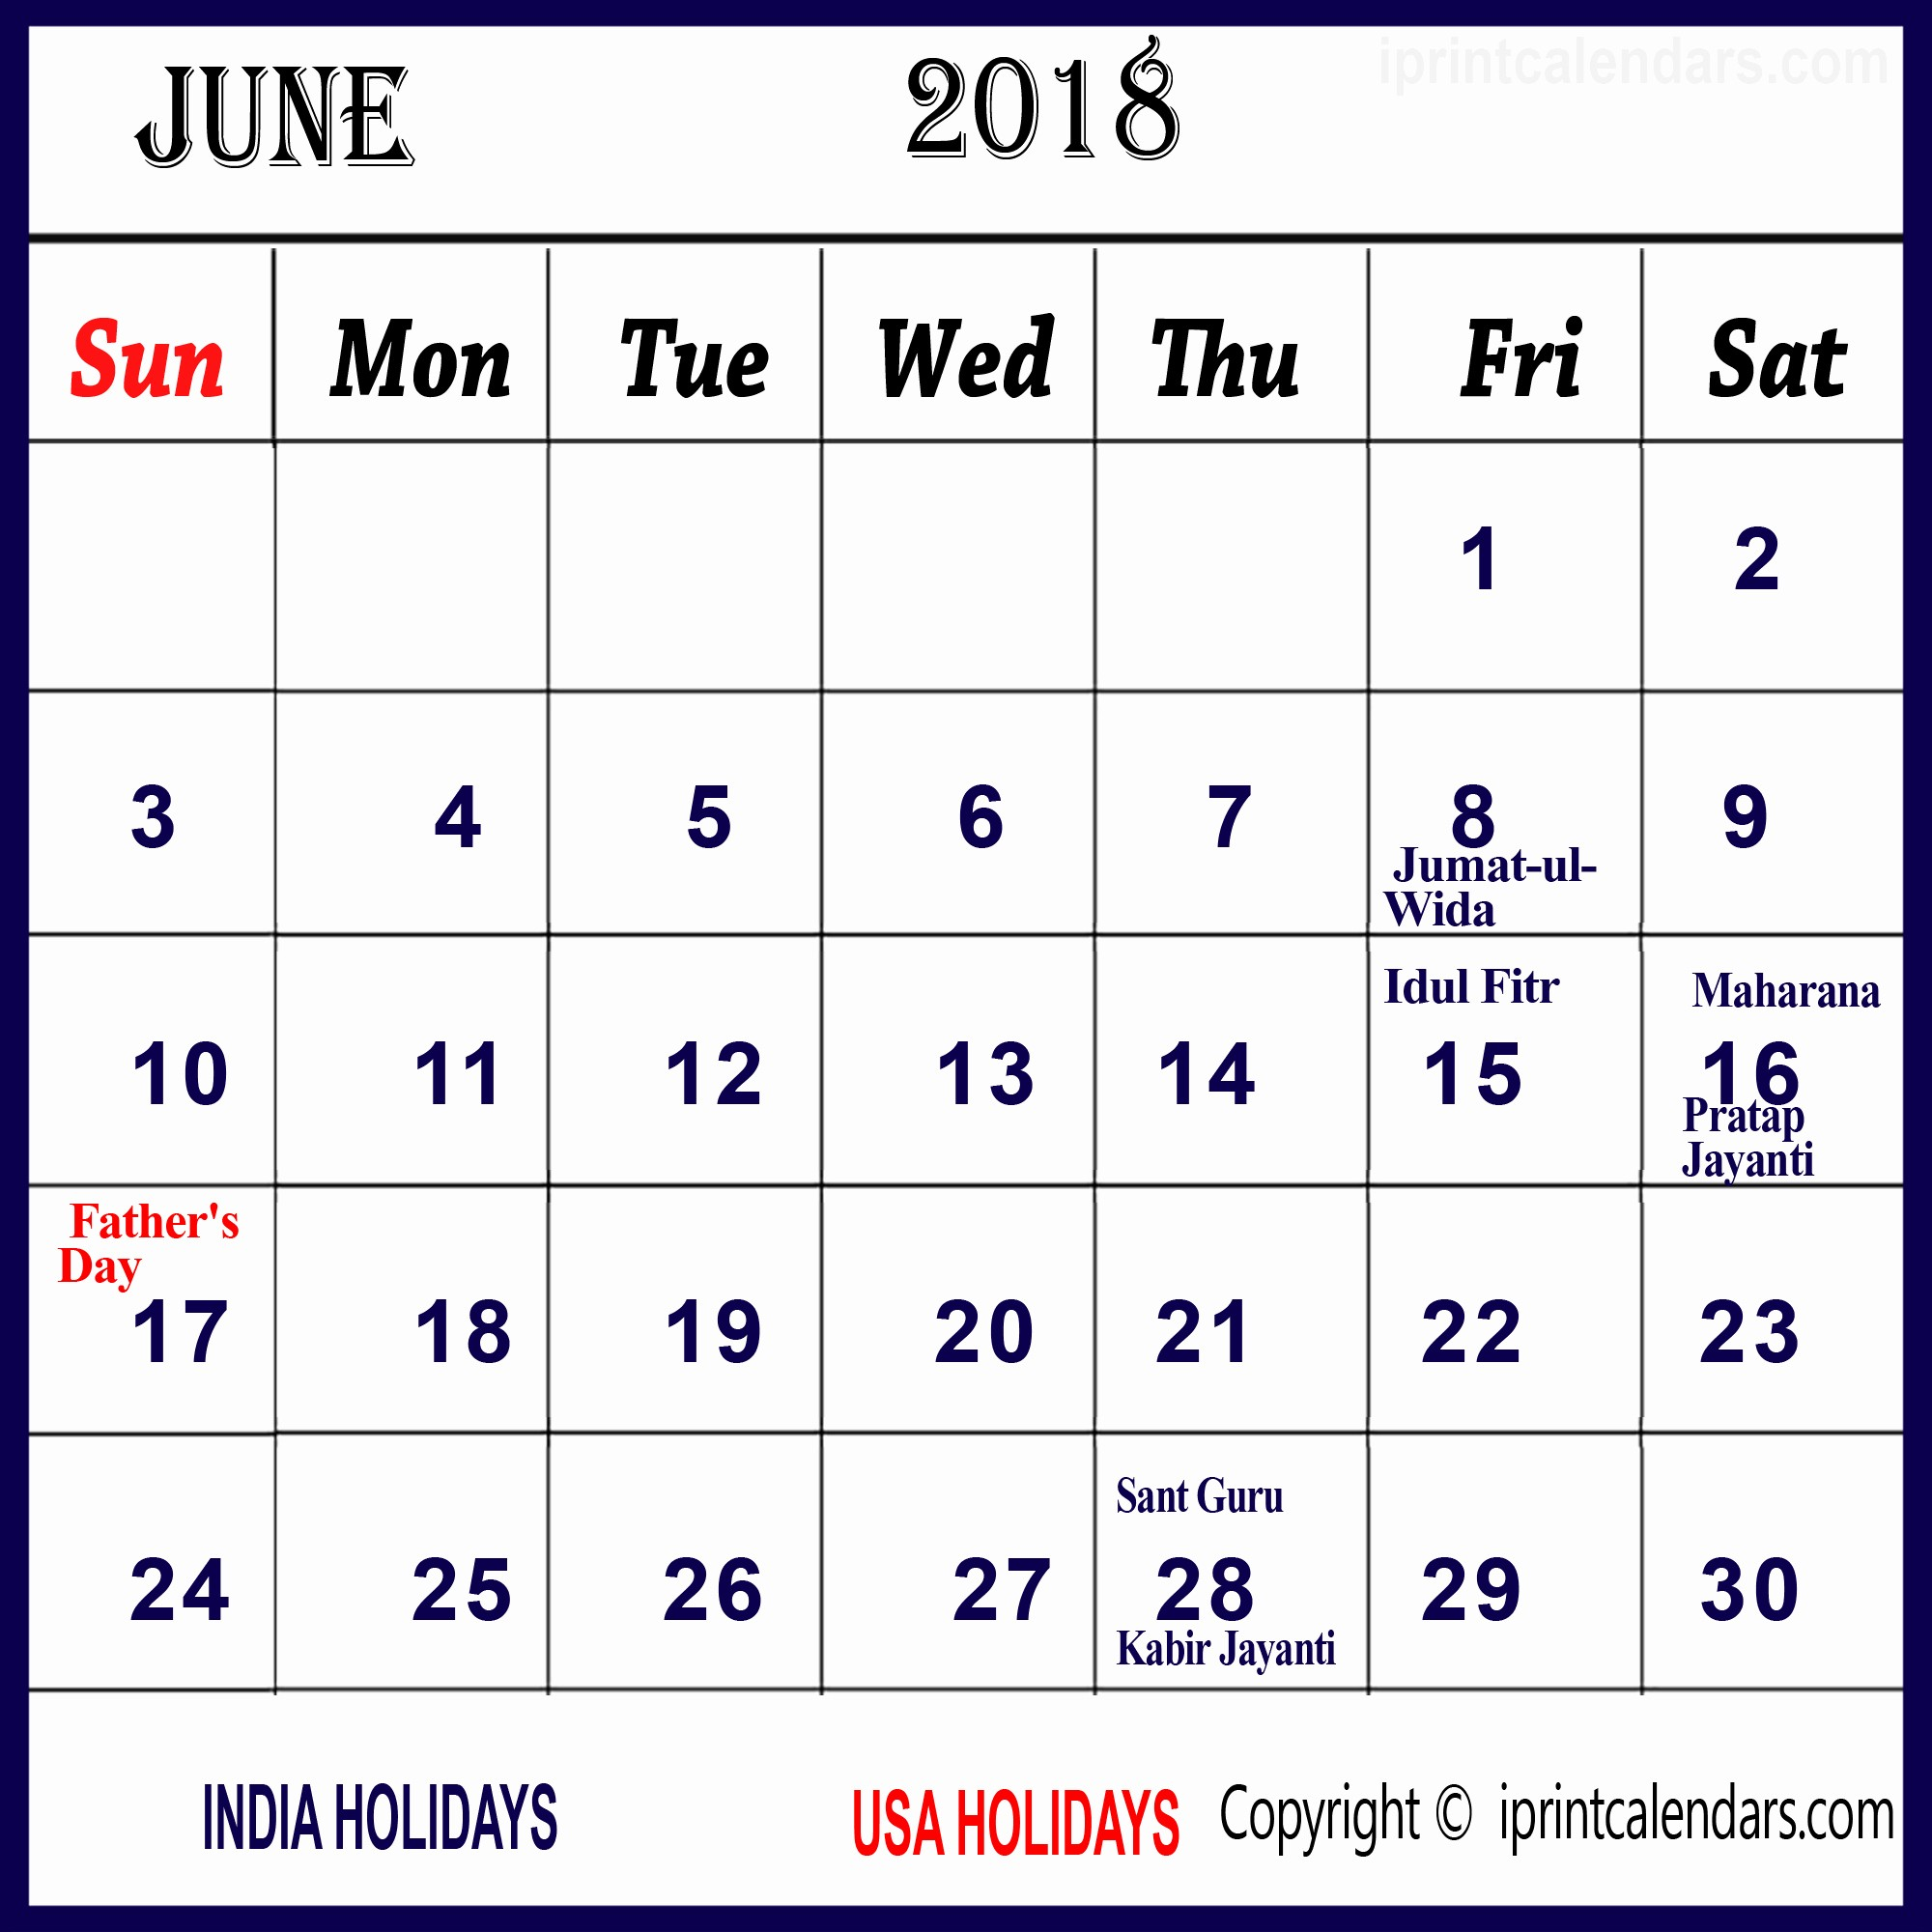 Calendar 2018 Printable with Holidays Lovely June 2018 Calendar with Holidays